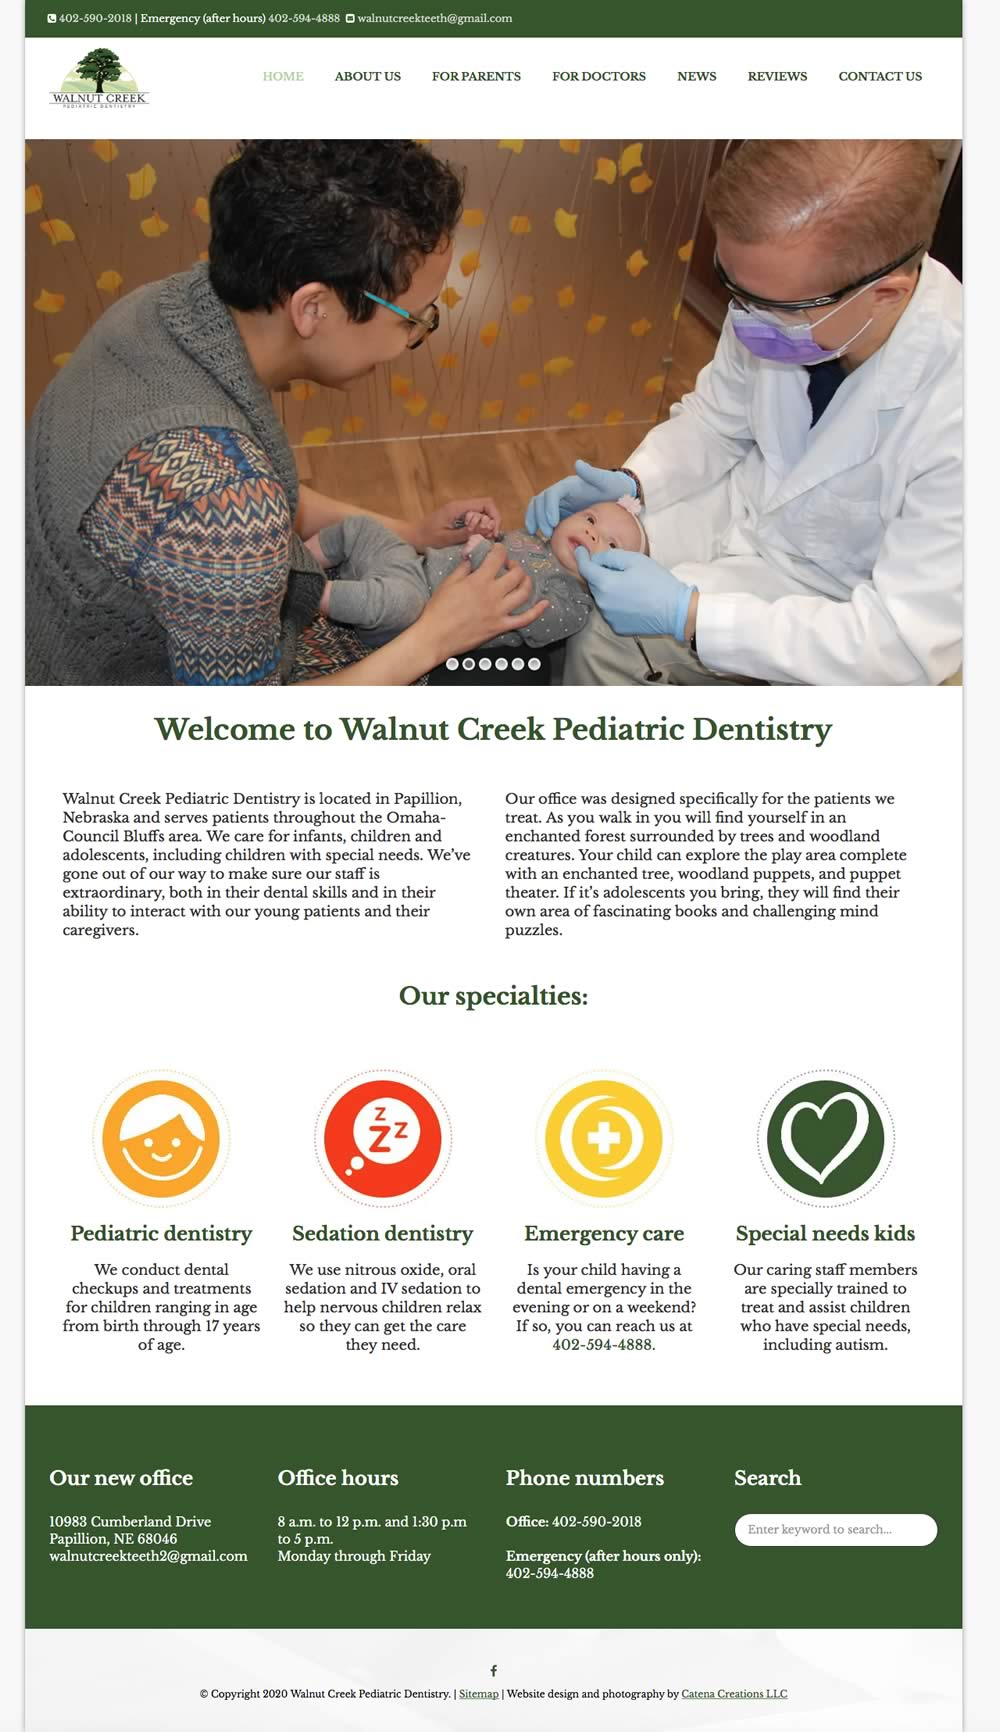 Walnut Creek Pediatric Dentistry 2020